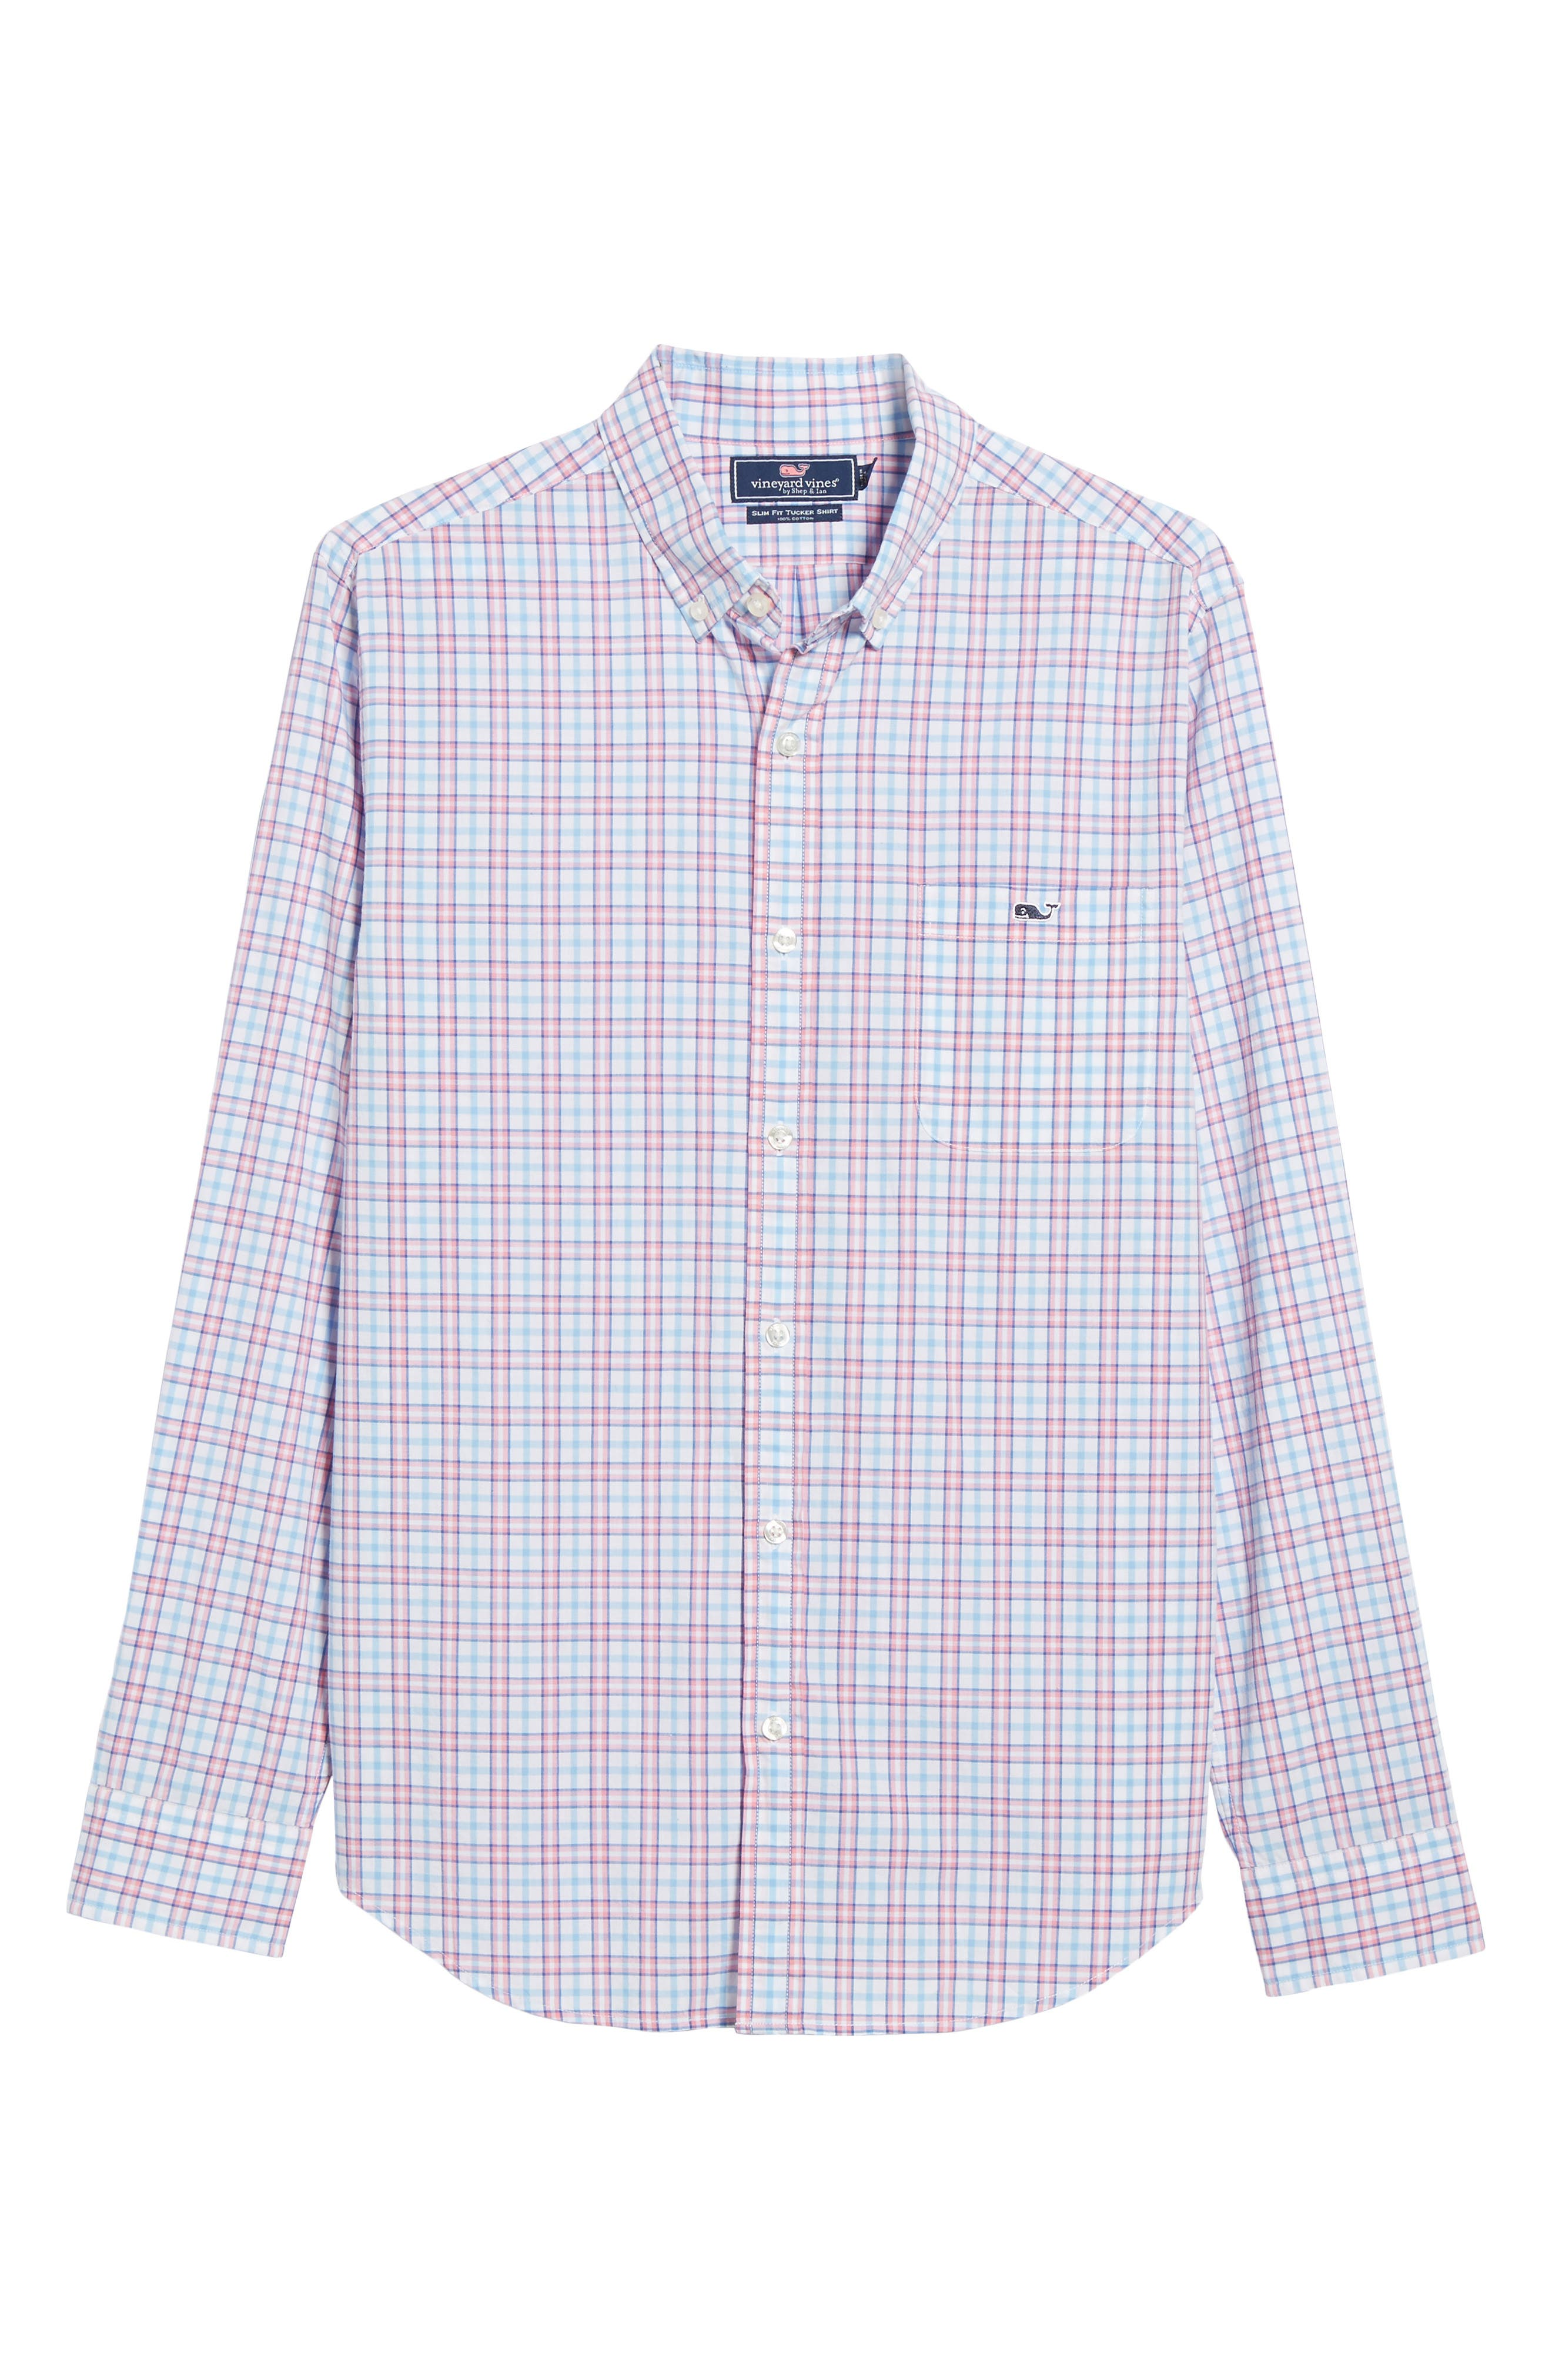 Kennard Tucker Slim Fit Plaid Sport Shirt,                             Alternate thumbnail 5, color,                             Bahama Breeze